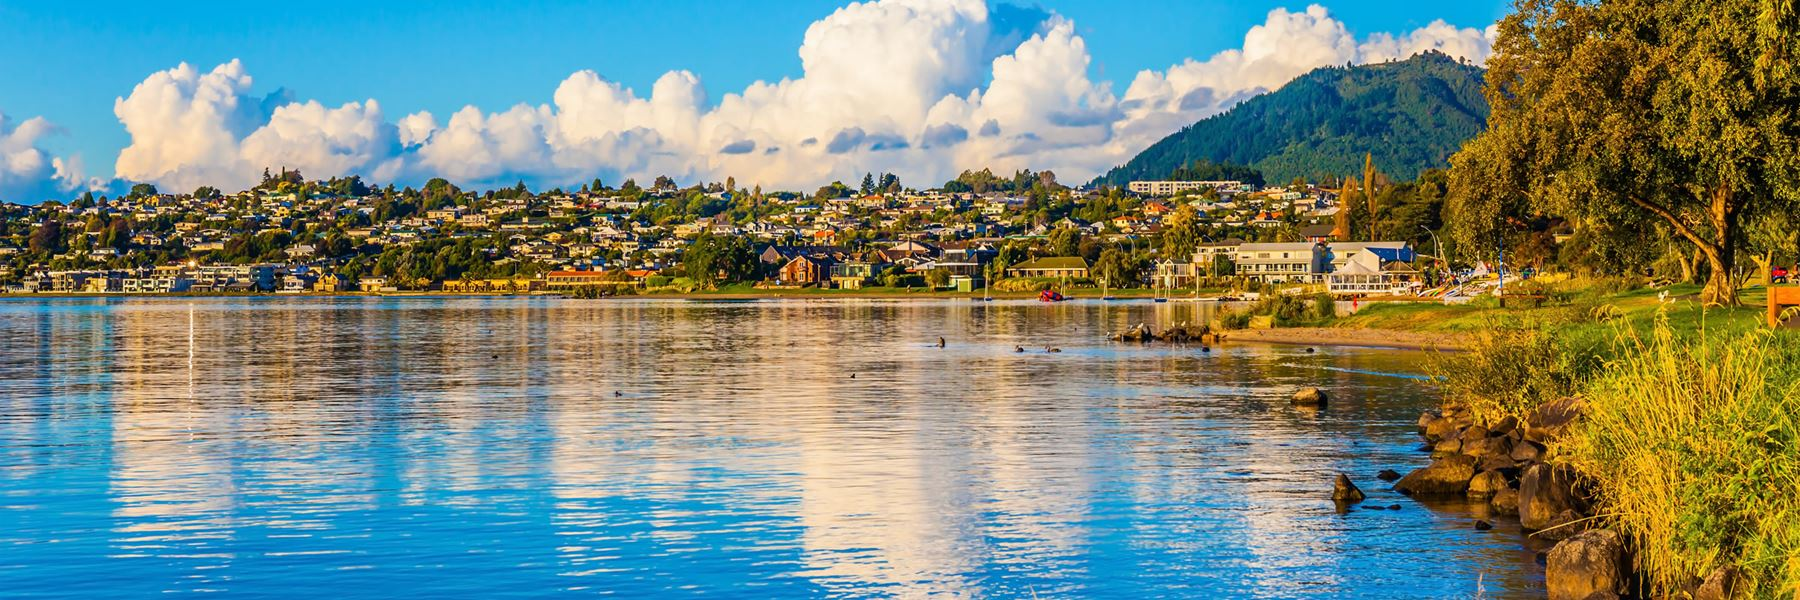 A Day Spent Taupo - Audley Travel - Globetrotting horse riding holidays